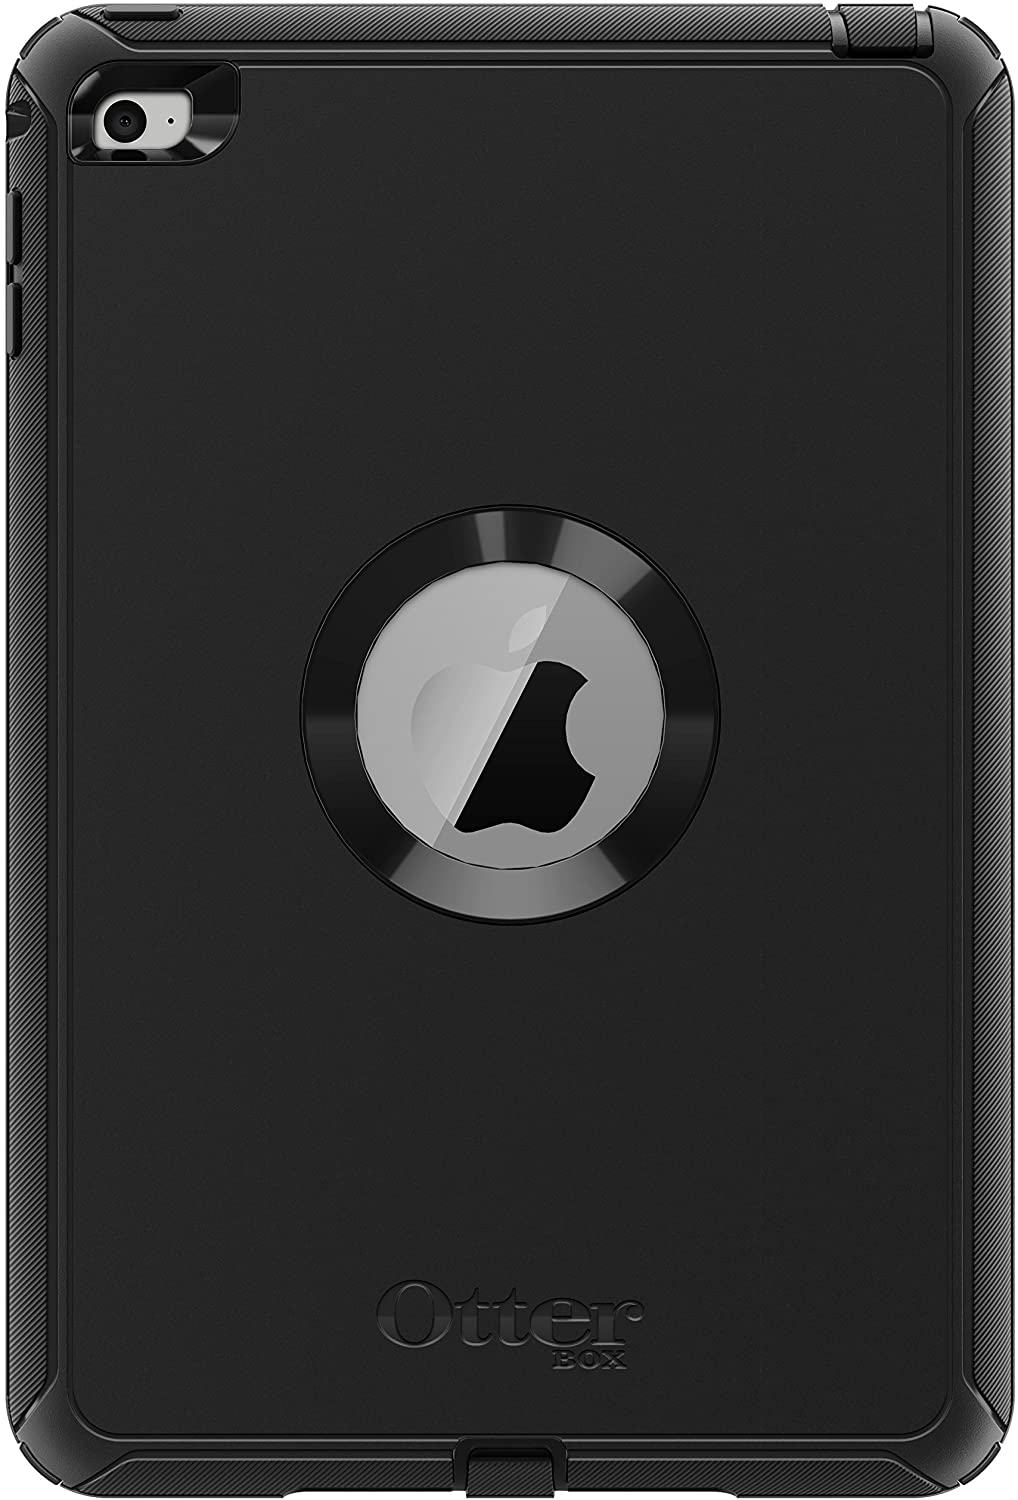 OtterBox DEFENDER SERIES Case for iPad Mini 4 (ONLY) - Retail Packaging - BLACK (Renewed)